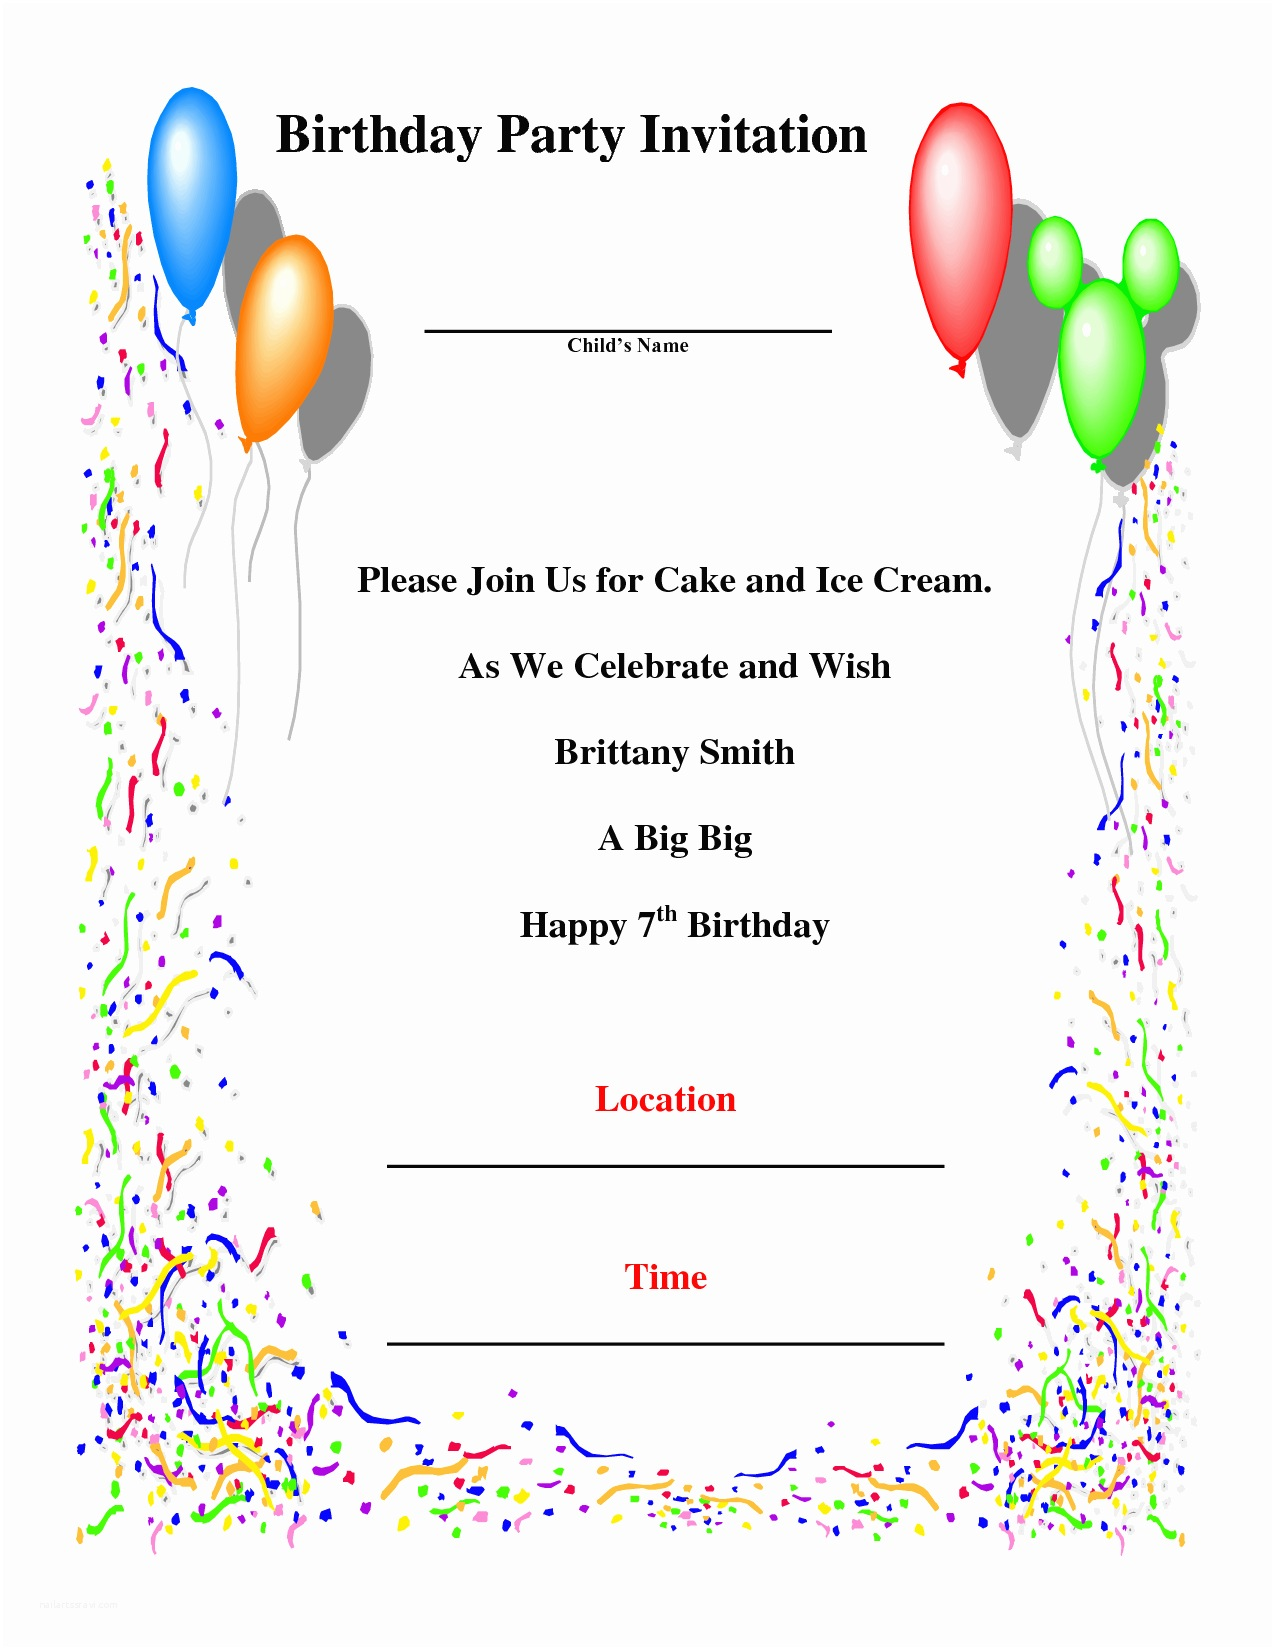 Birthday Party Invitation Template Birthday Party Invitations Template